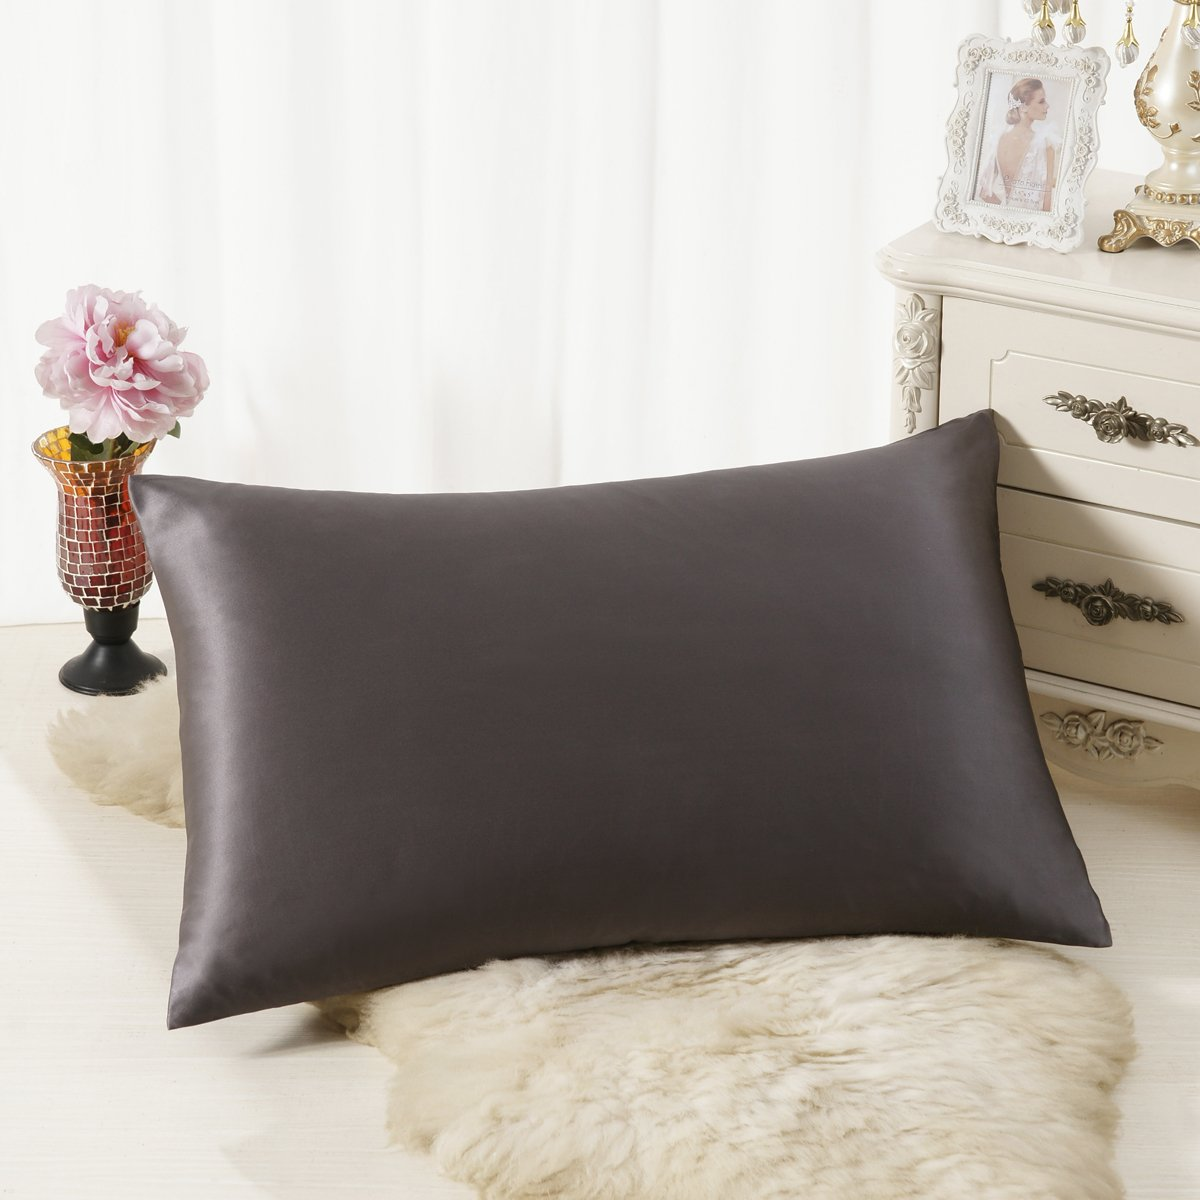 ALASKA BEAR Natural Silk Pillowcase Charcoal Gray